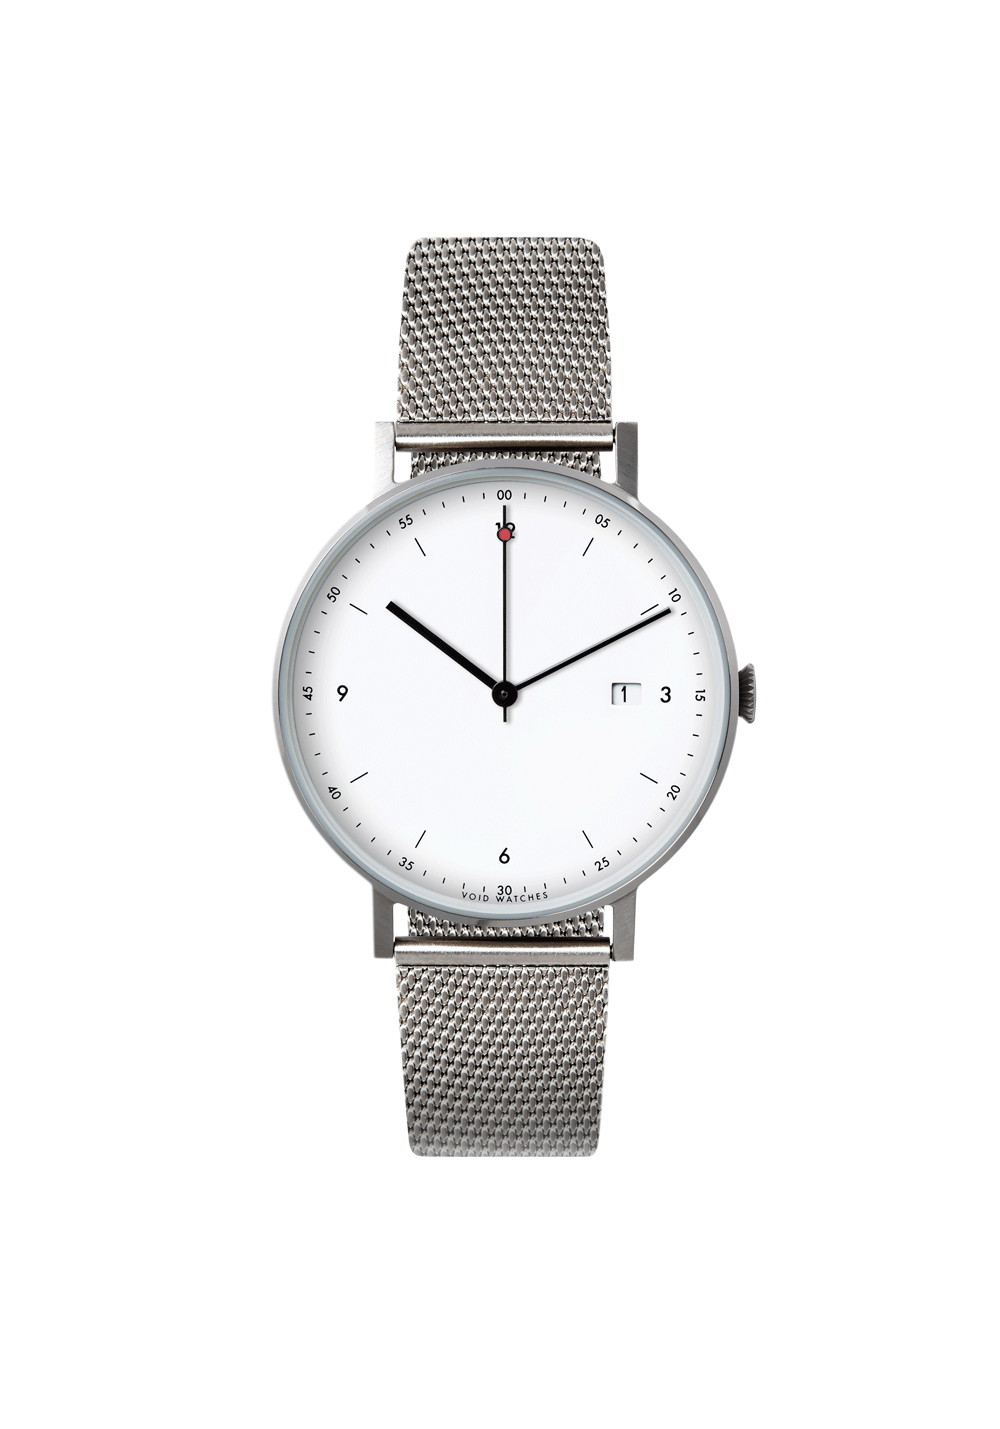 The PKG01-SI/MR/WH by VOID Watches. Classic Date Watch with a Milanese Strap.